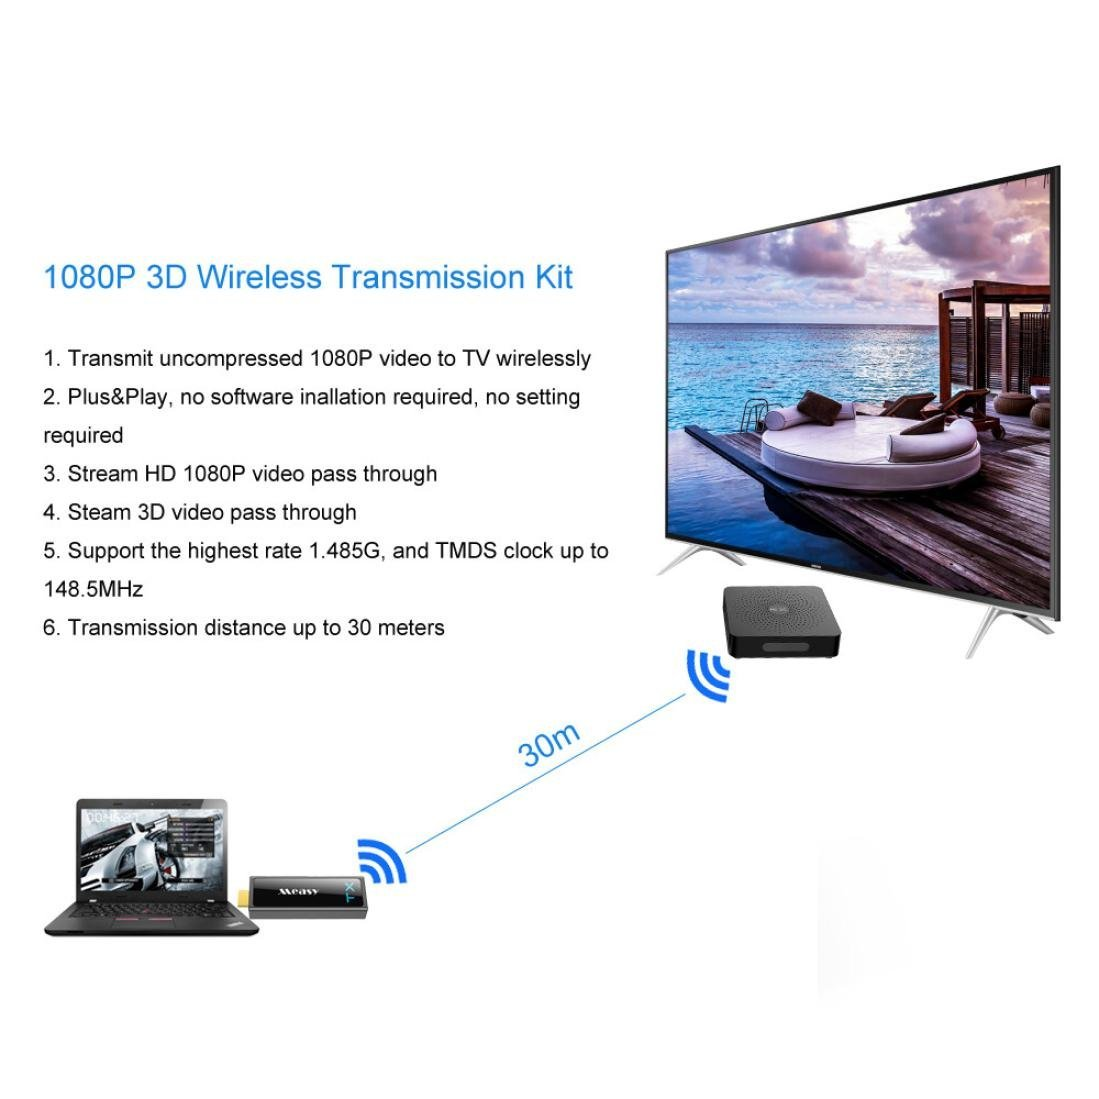 Sonmer Measy Wireless HDMI 3D Video HDCP 2.0 Sending and Receiving Box, 1080HD Video Wireless Transmission Box by Sonmer (Image #4)